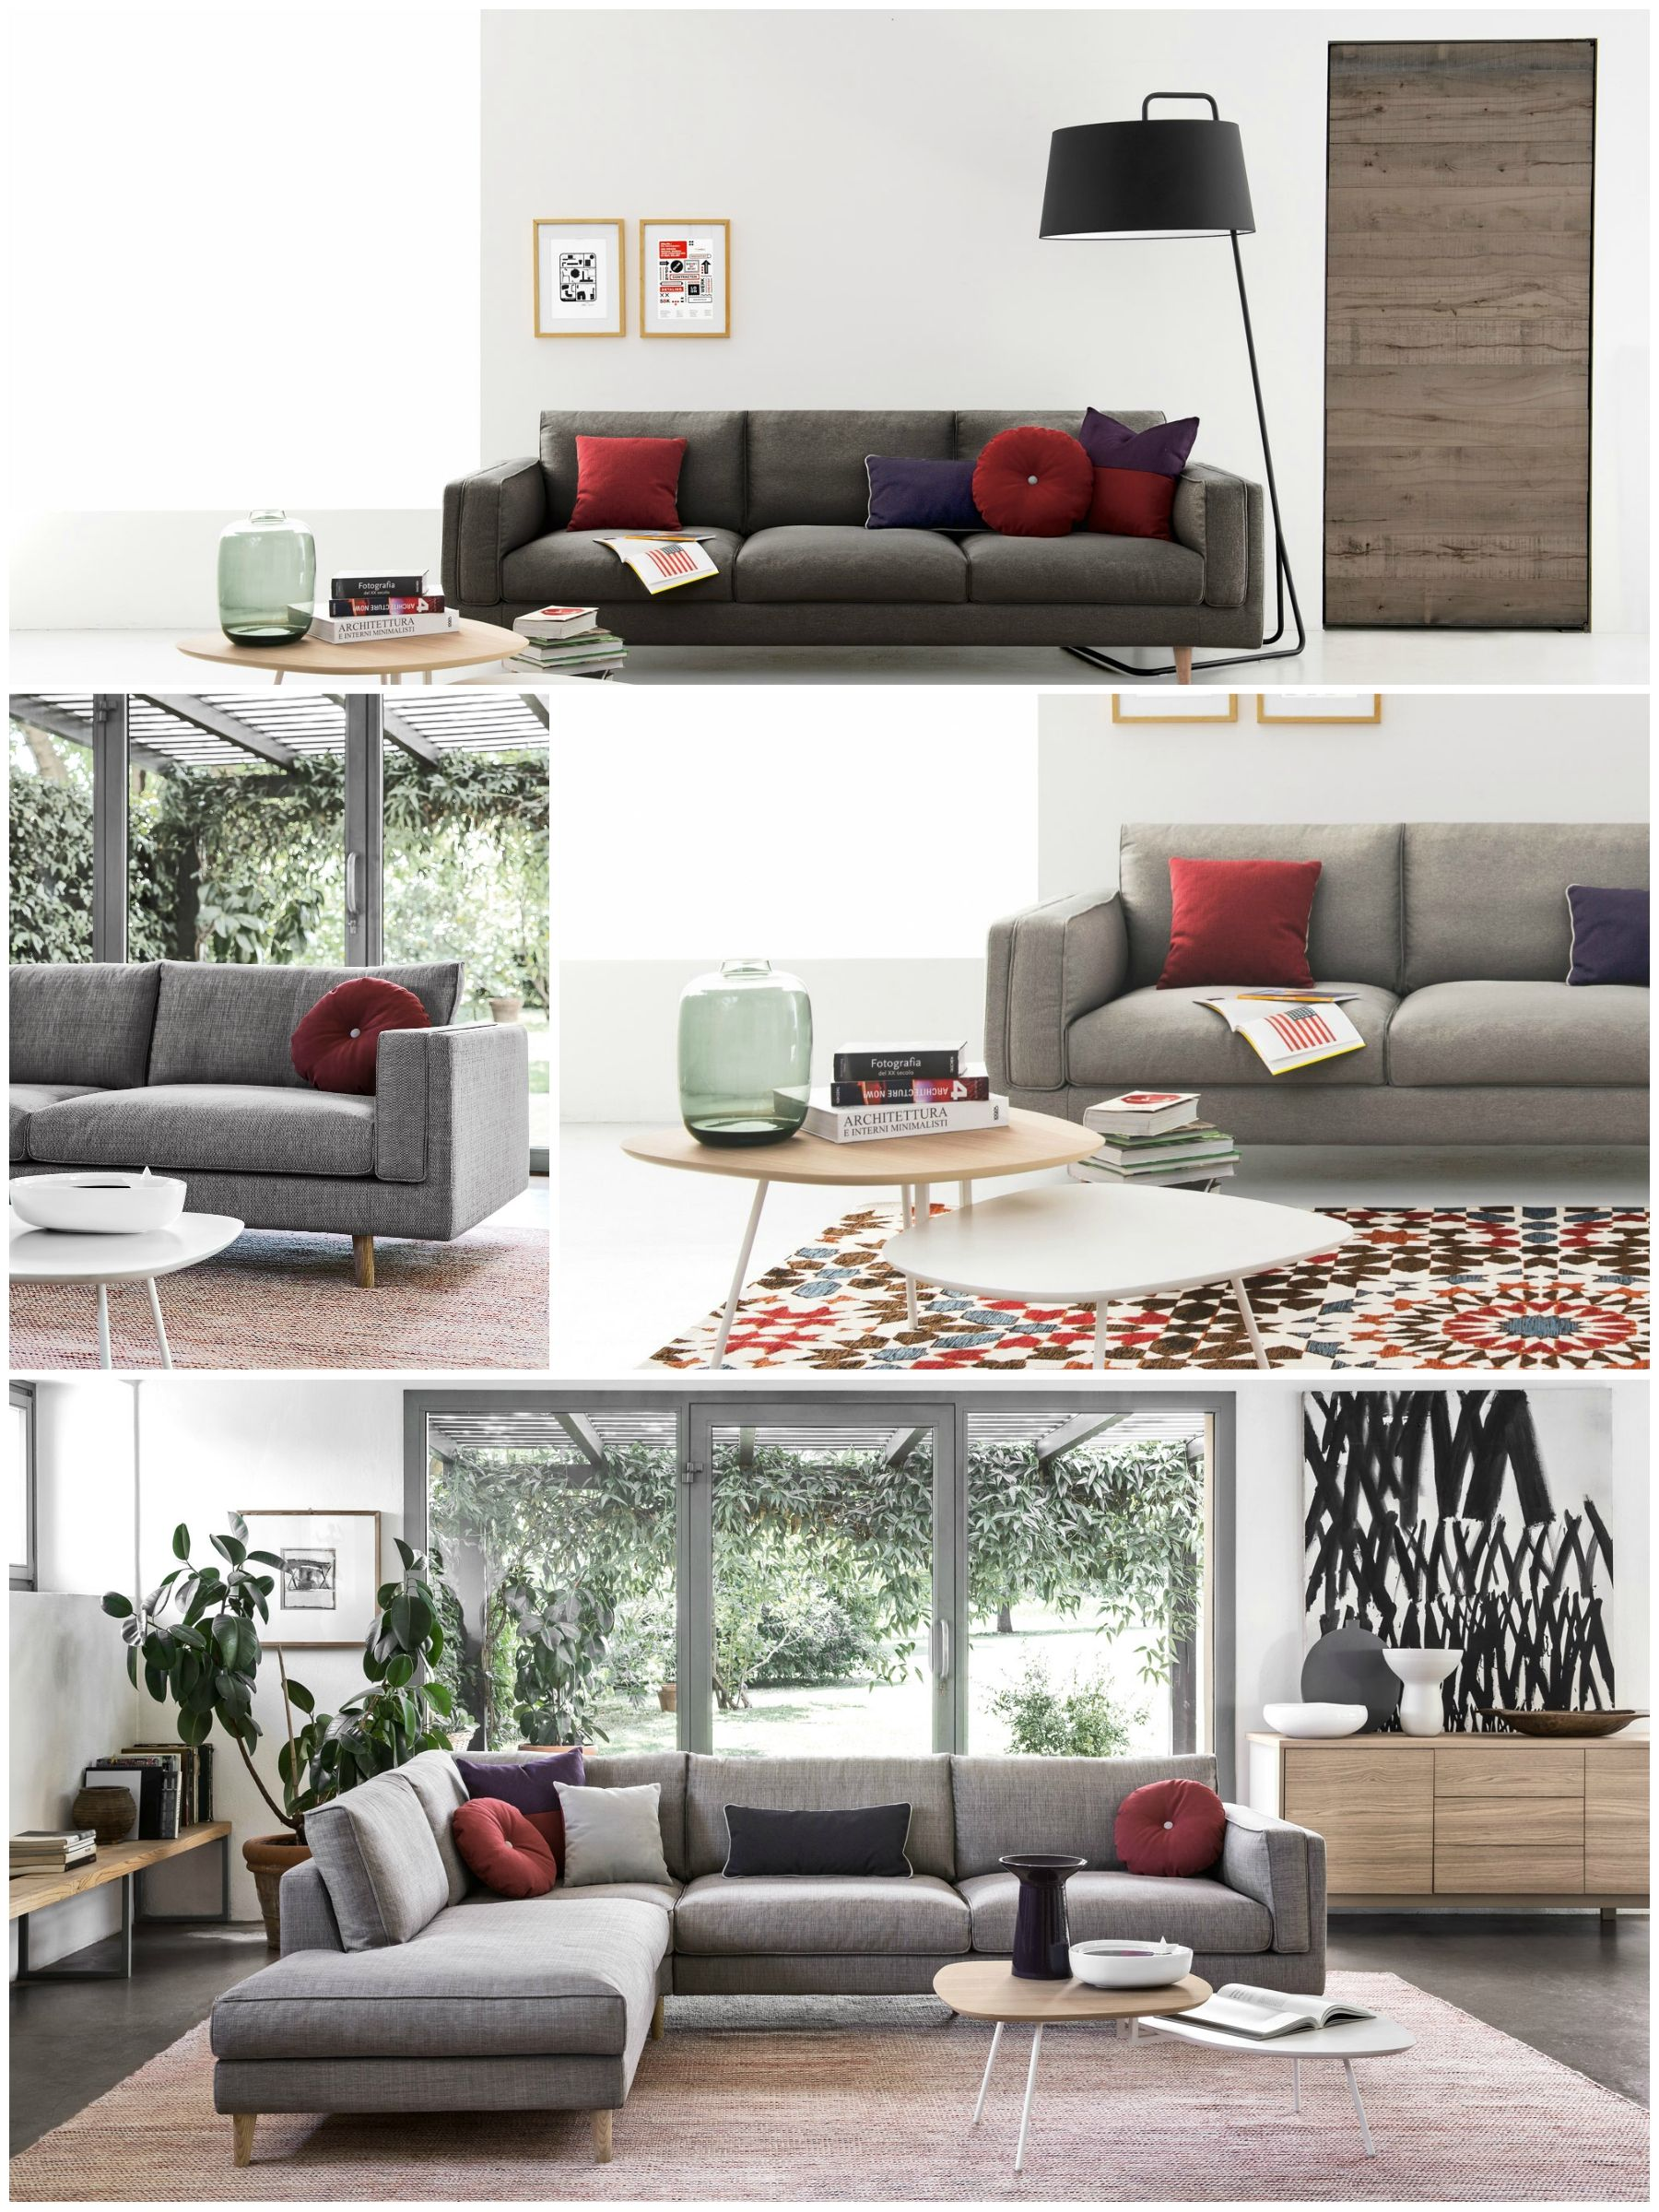 Minimal and contemporary, METRO is a highly comfortable